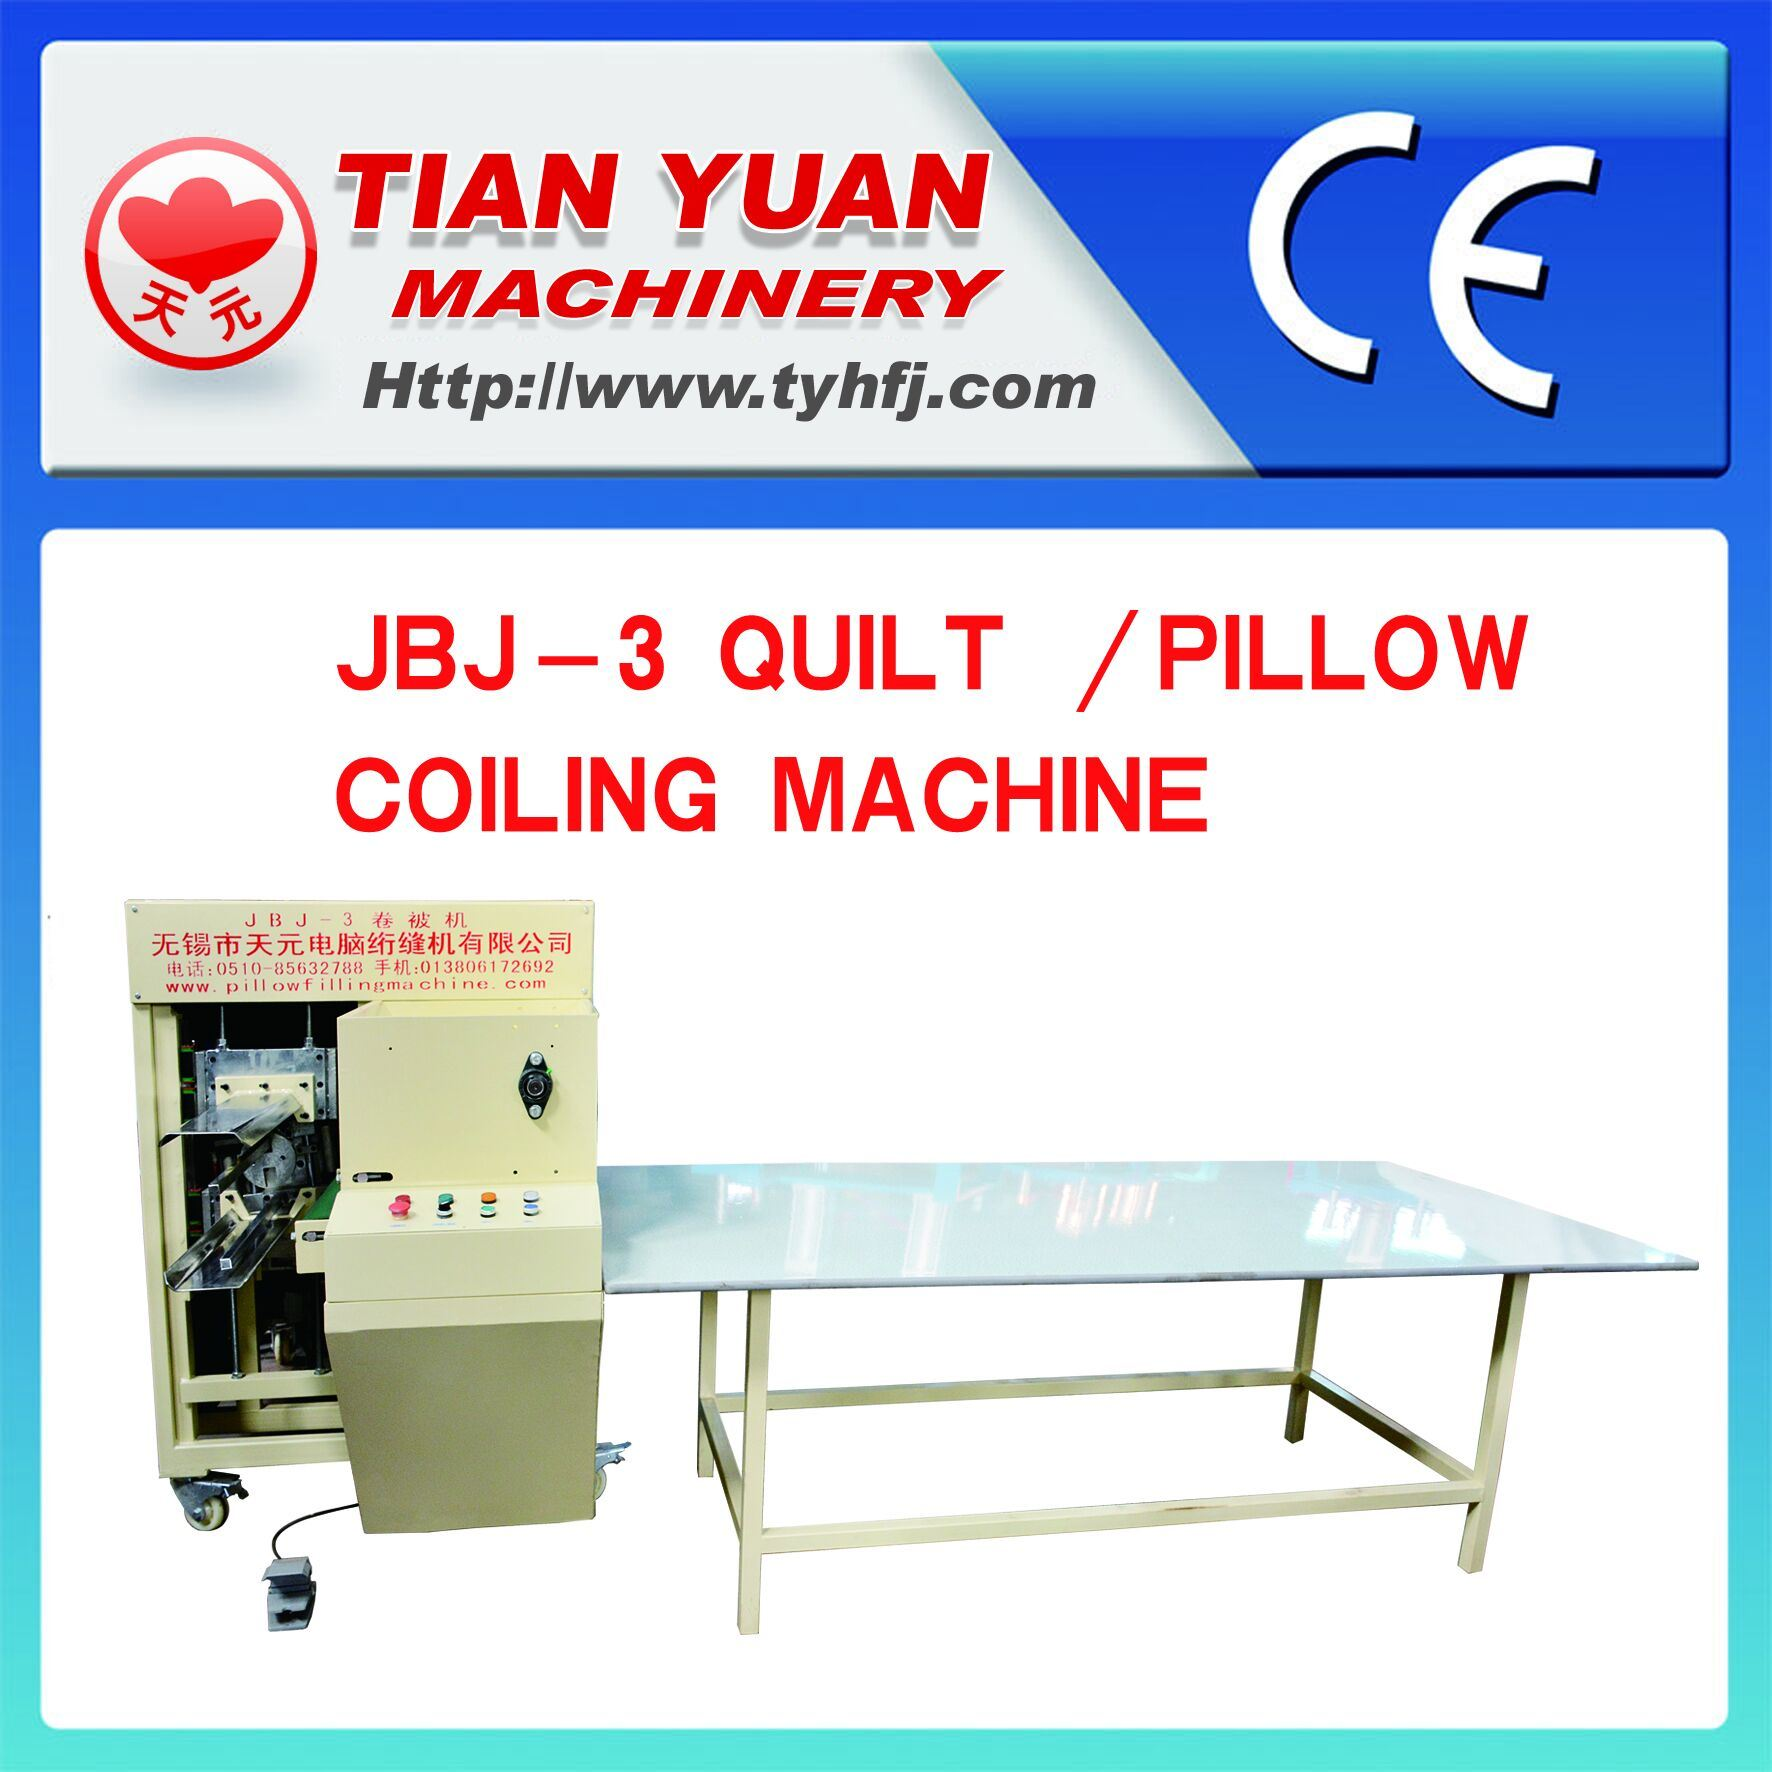 Bedding Quilt Coiling Packing Machine (JBJ-3)